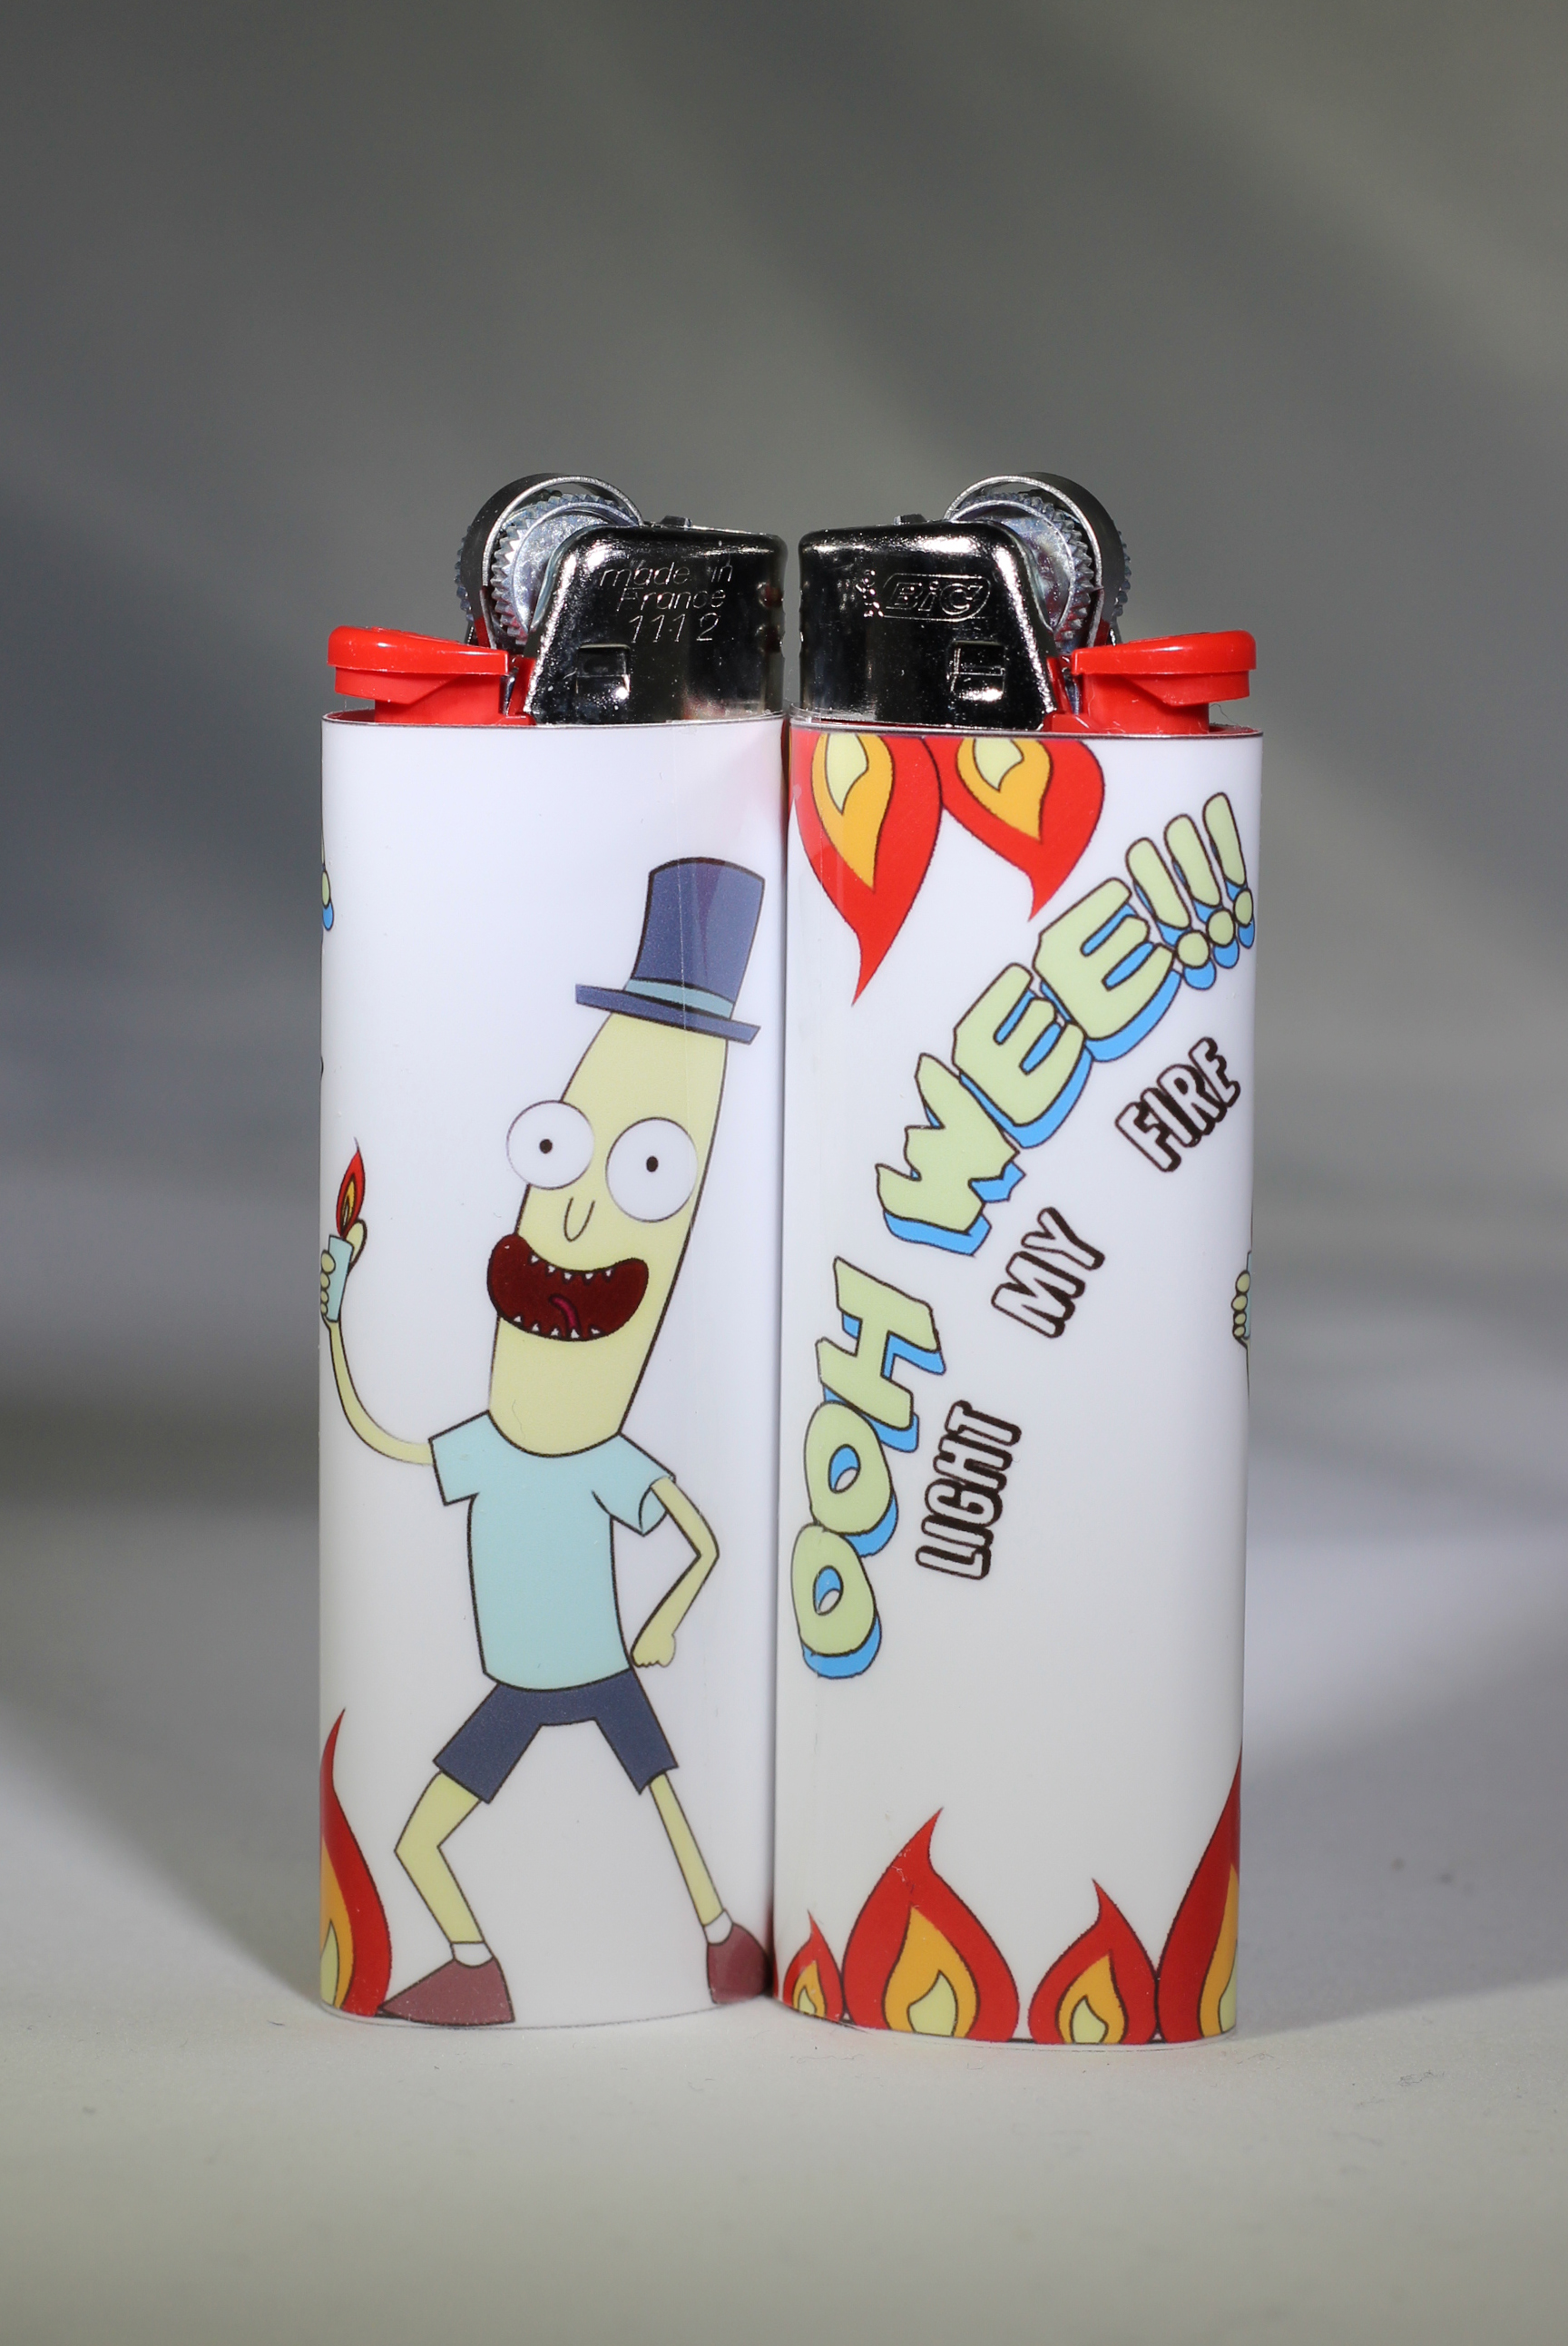 Mr  Poopy Butthole Bic Lighter - Custom Made  Handmade  Rick and Morty /  Adult Swim sold by Stay Lit Art